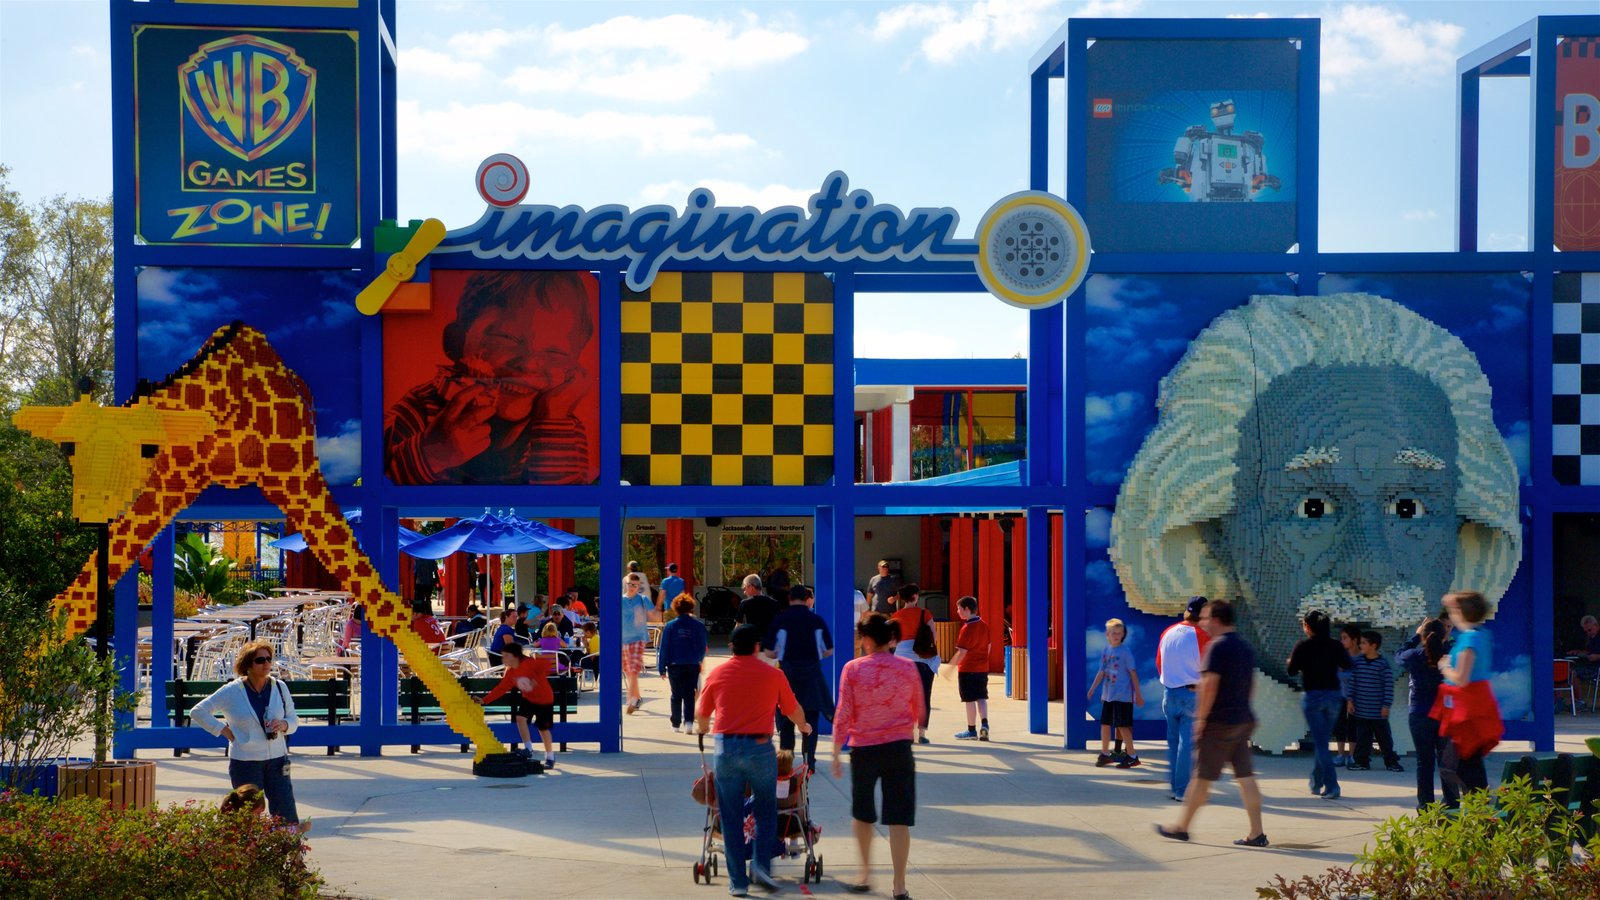 Legoland Florida showing rides as well as a small group of people